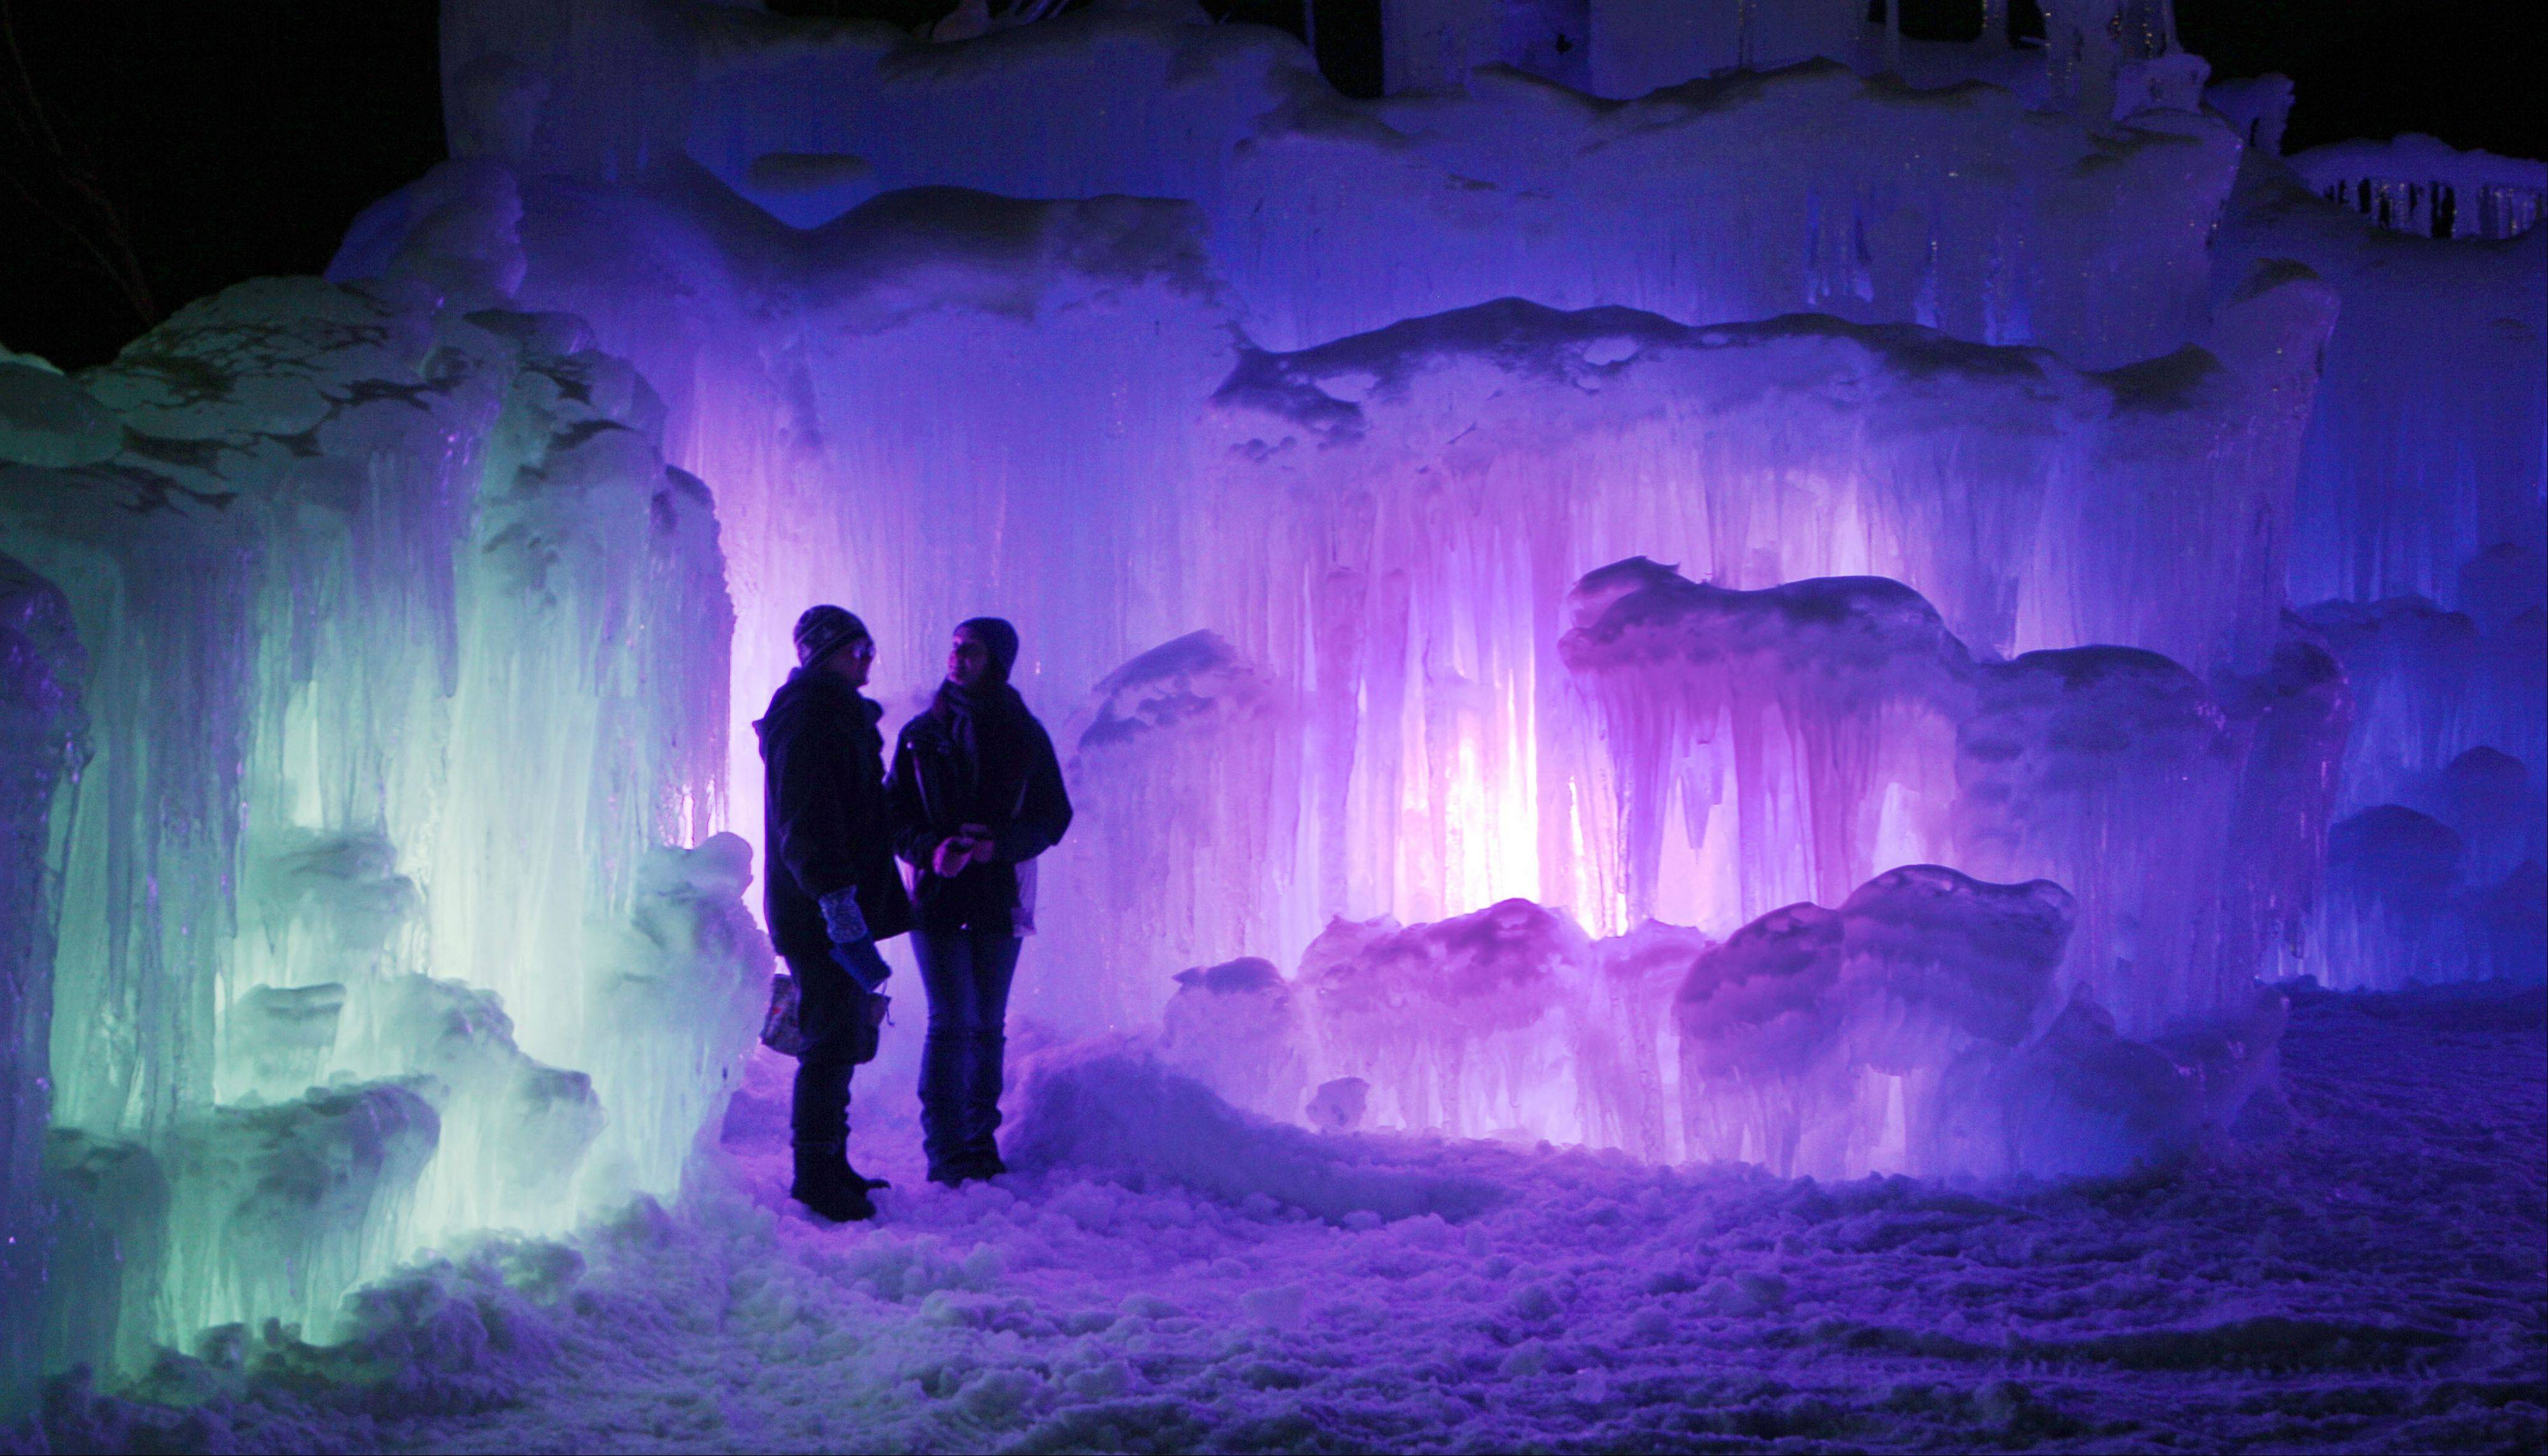 At night, the ice castles at the base of the Loon Mountain ski resort in Lincoln, N.H., are lit by color-changing LED lights embedded in the ice.